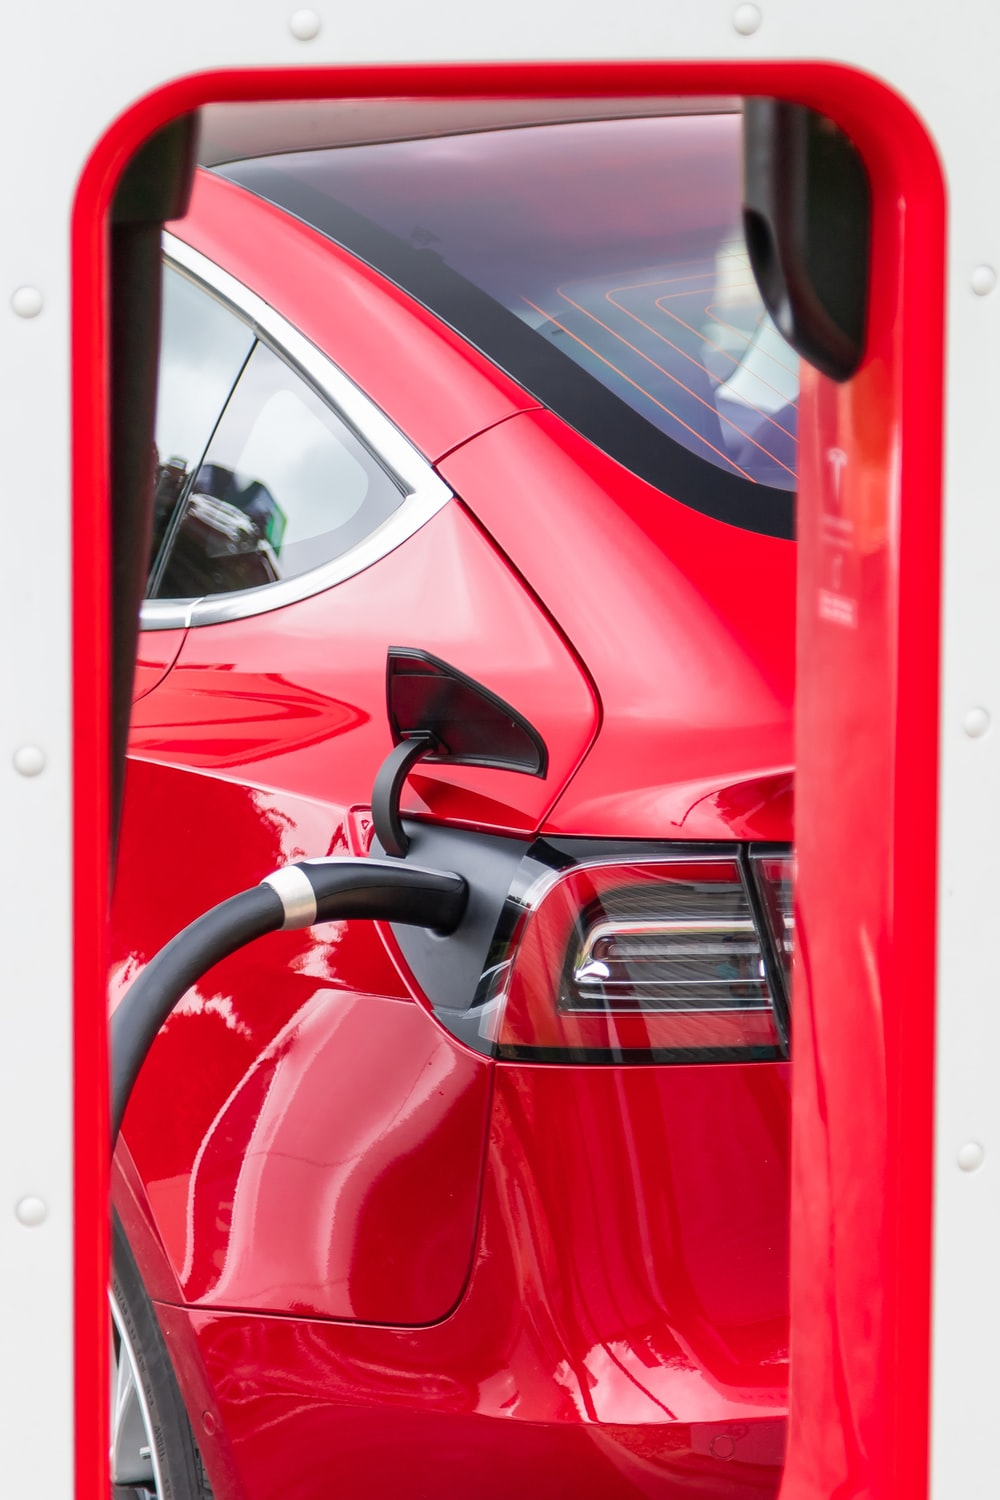 red car refuelling